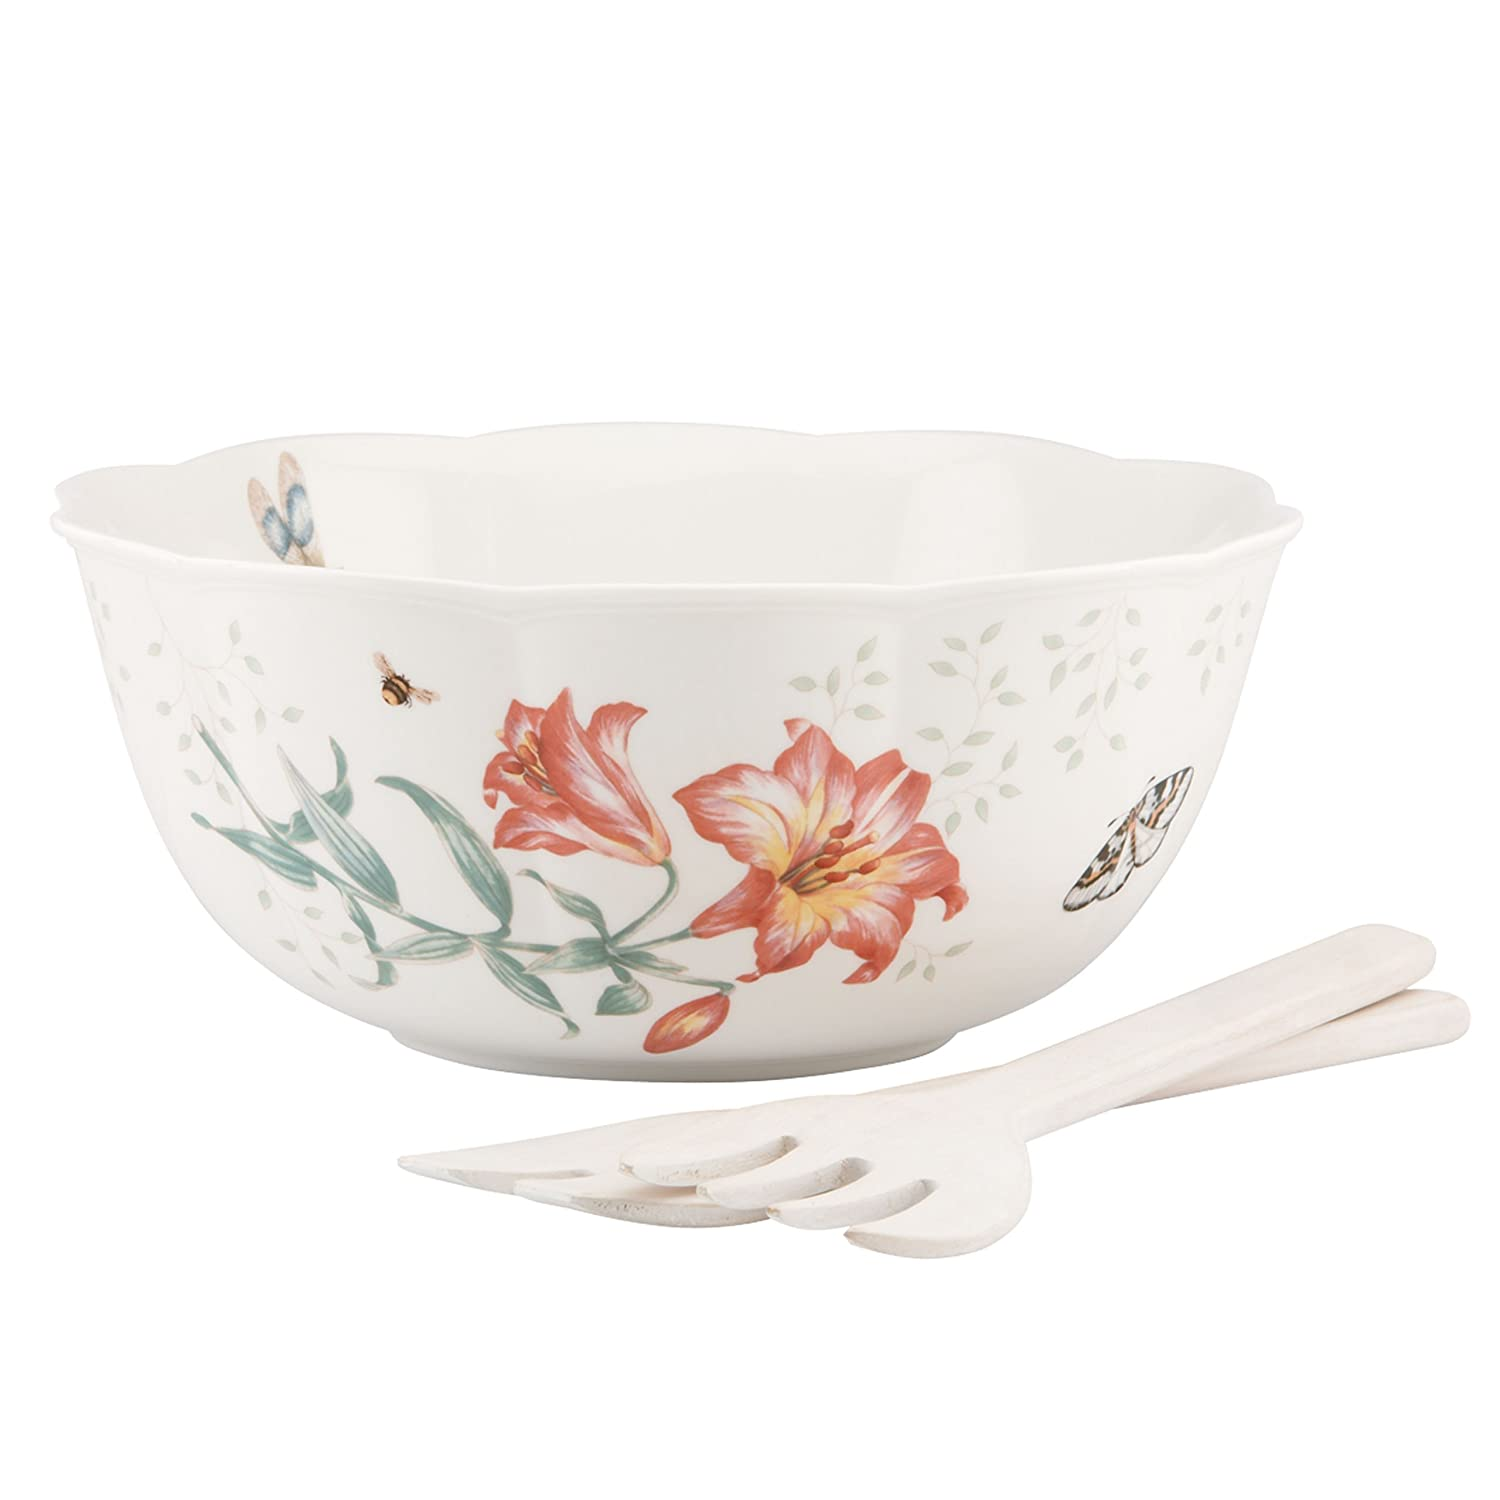 Lenox Butterfly Meadow Square Covered Casserole, 2 piece 855622